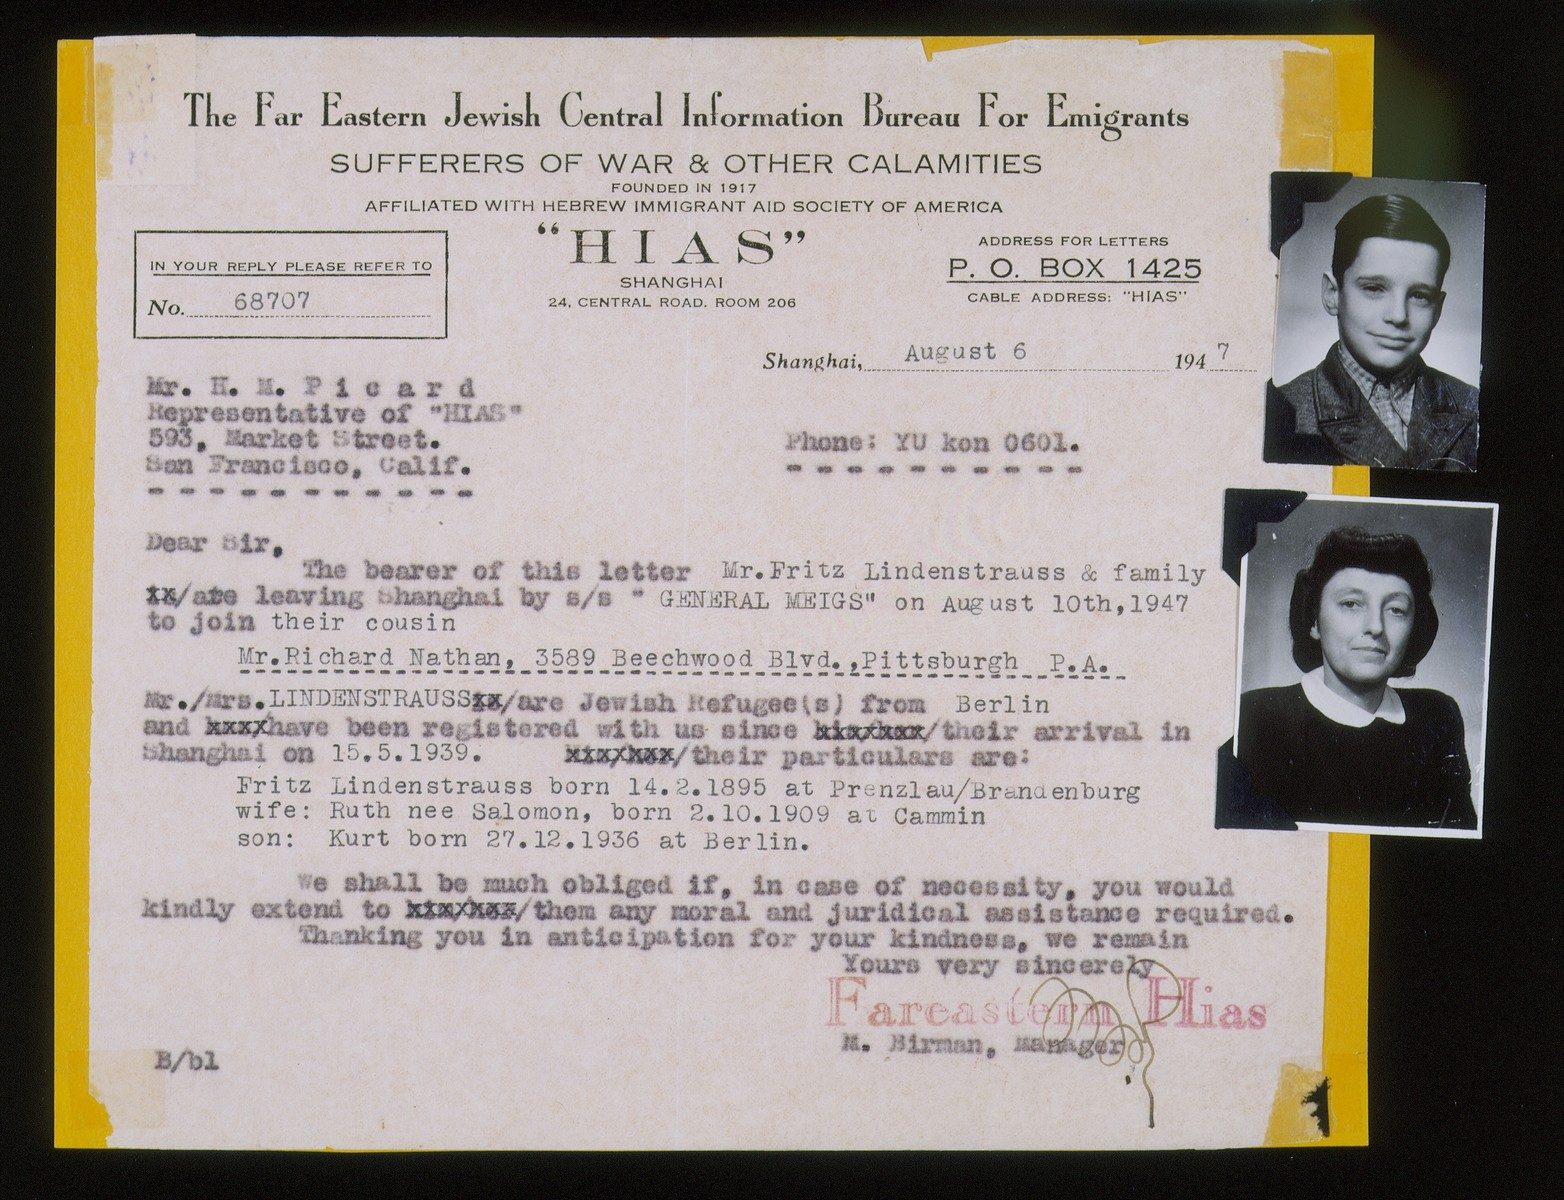 Document issued by The Far Eastern Jewish Central Information Bureau For Emigrants, an affiliate of HIAS, certifying that three members of a Jewish refugee family are leaving Shanghai to join a cousin in PIttsburgh, PA.  The three refugees are Fritz, Ruth, and Kurt Lindenstrauss. The Lindenstrauss' fled from Berlin to Shanghai in 1939.